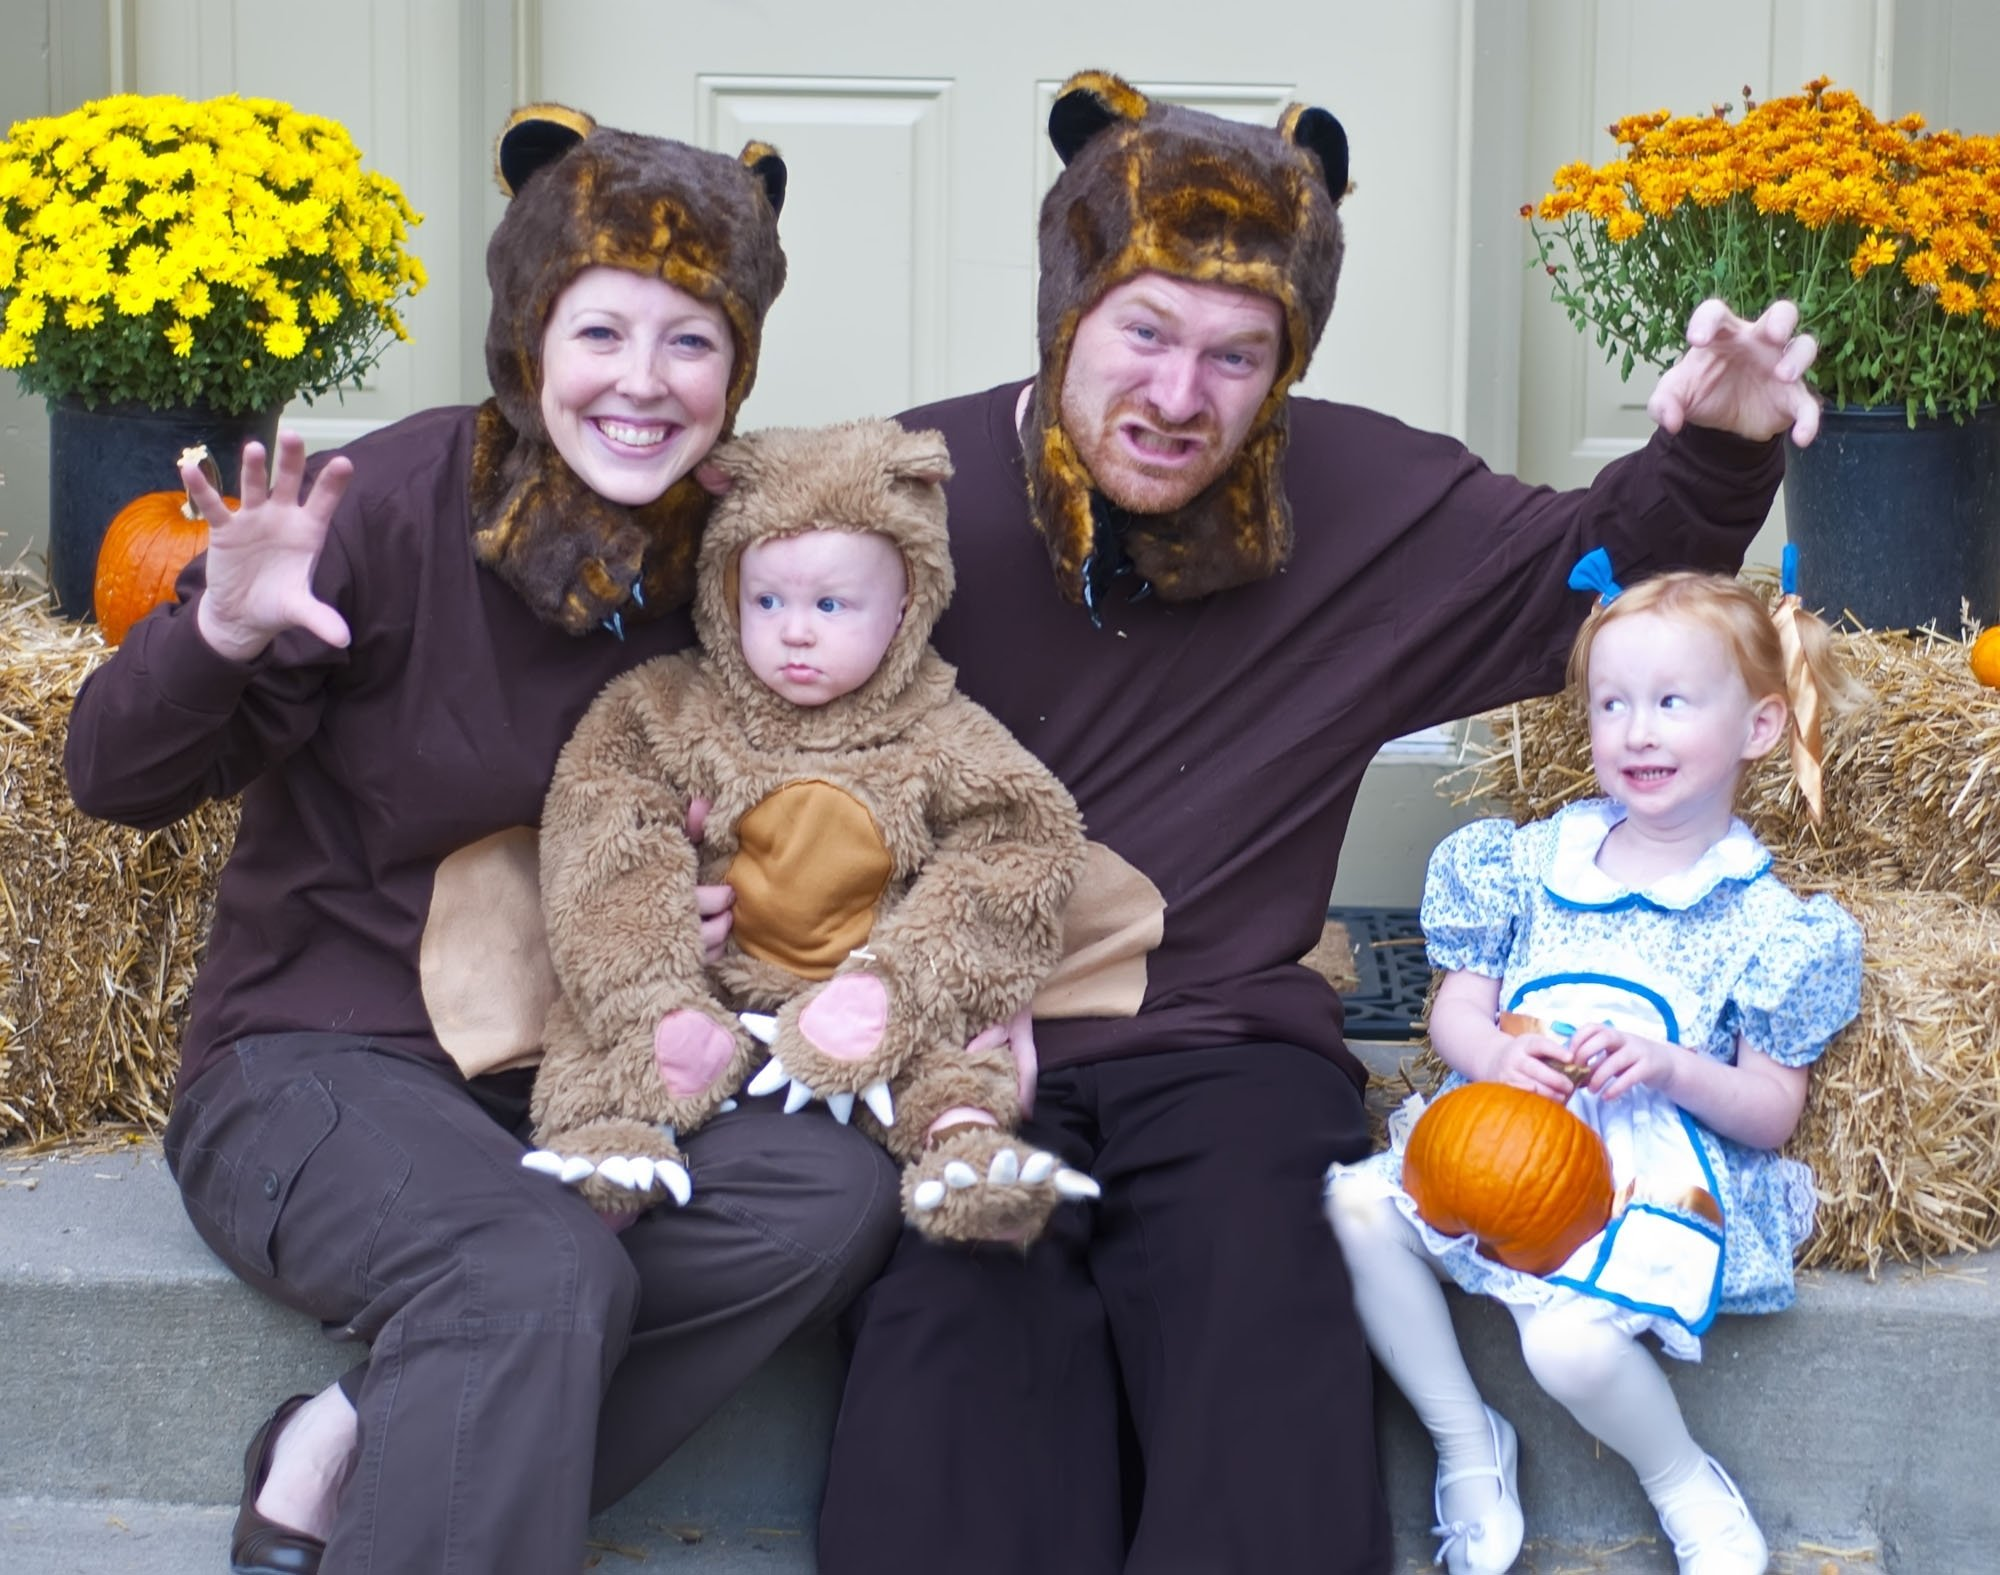 10 Gorgeous Family Of Three Halloween Costume Ideas cute family costume goldilocks and the three bears family 1 2020